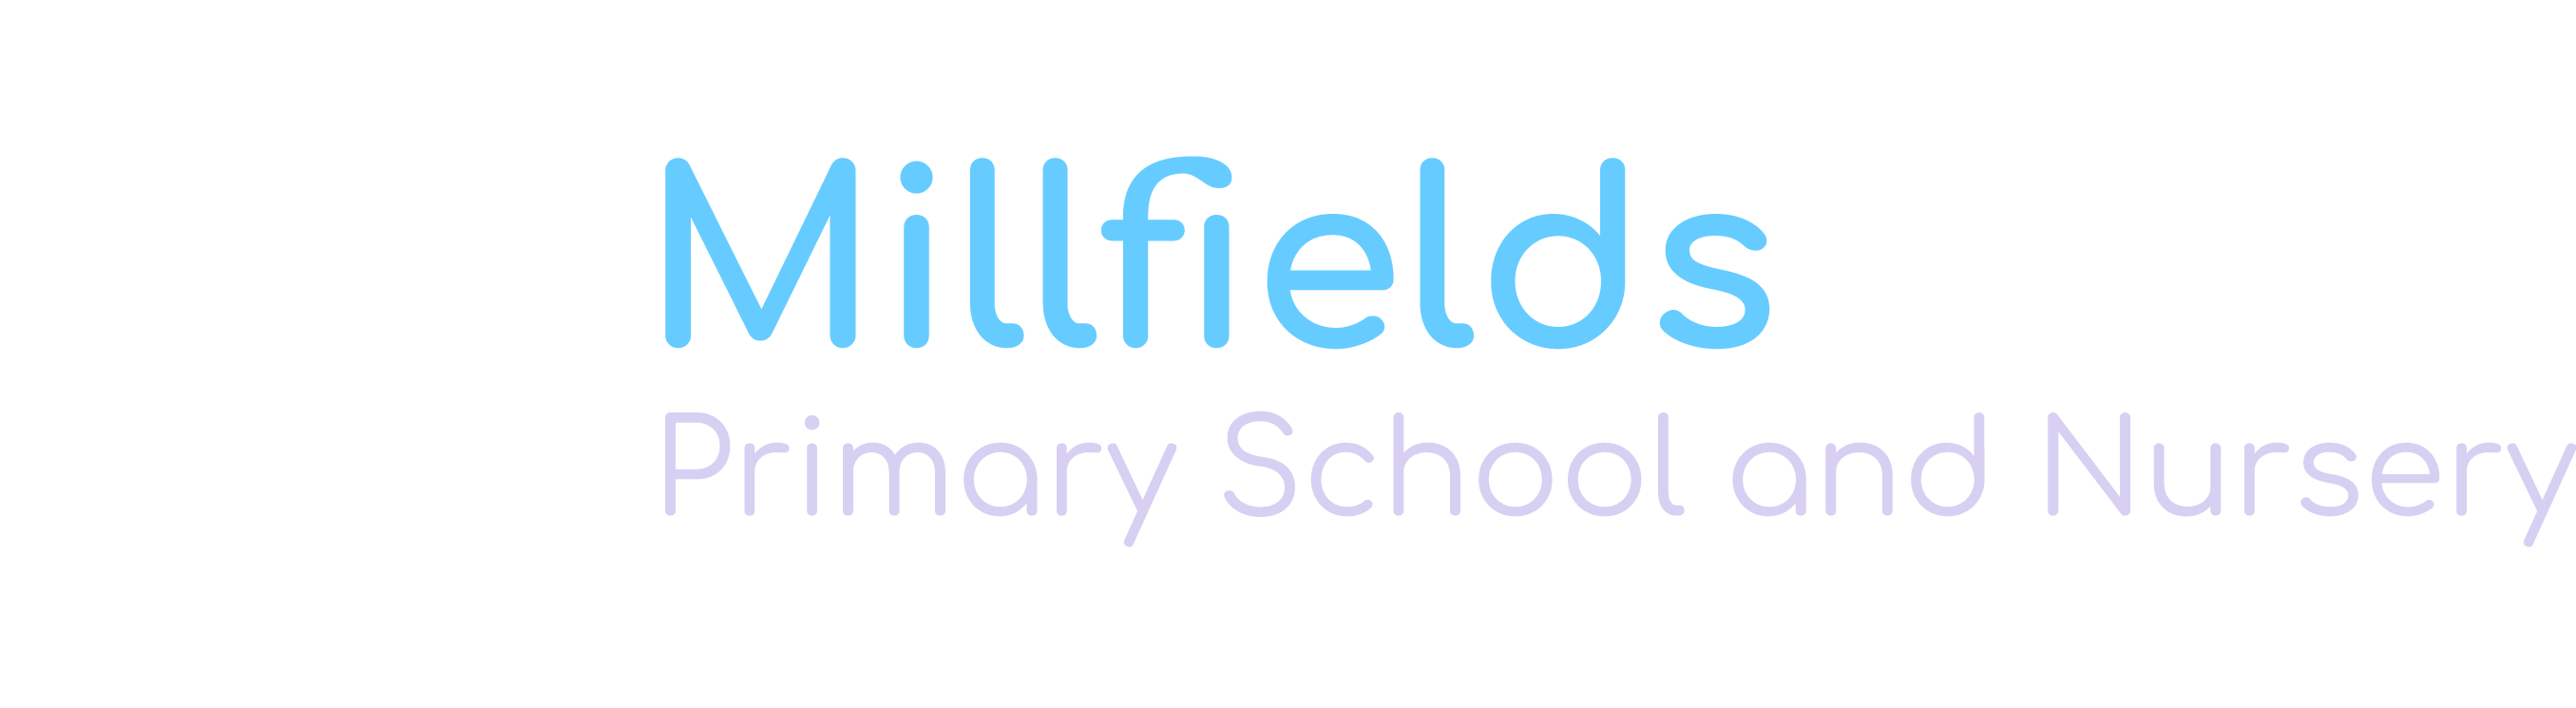 Millfields Primary School and Nursery